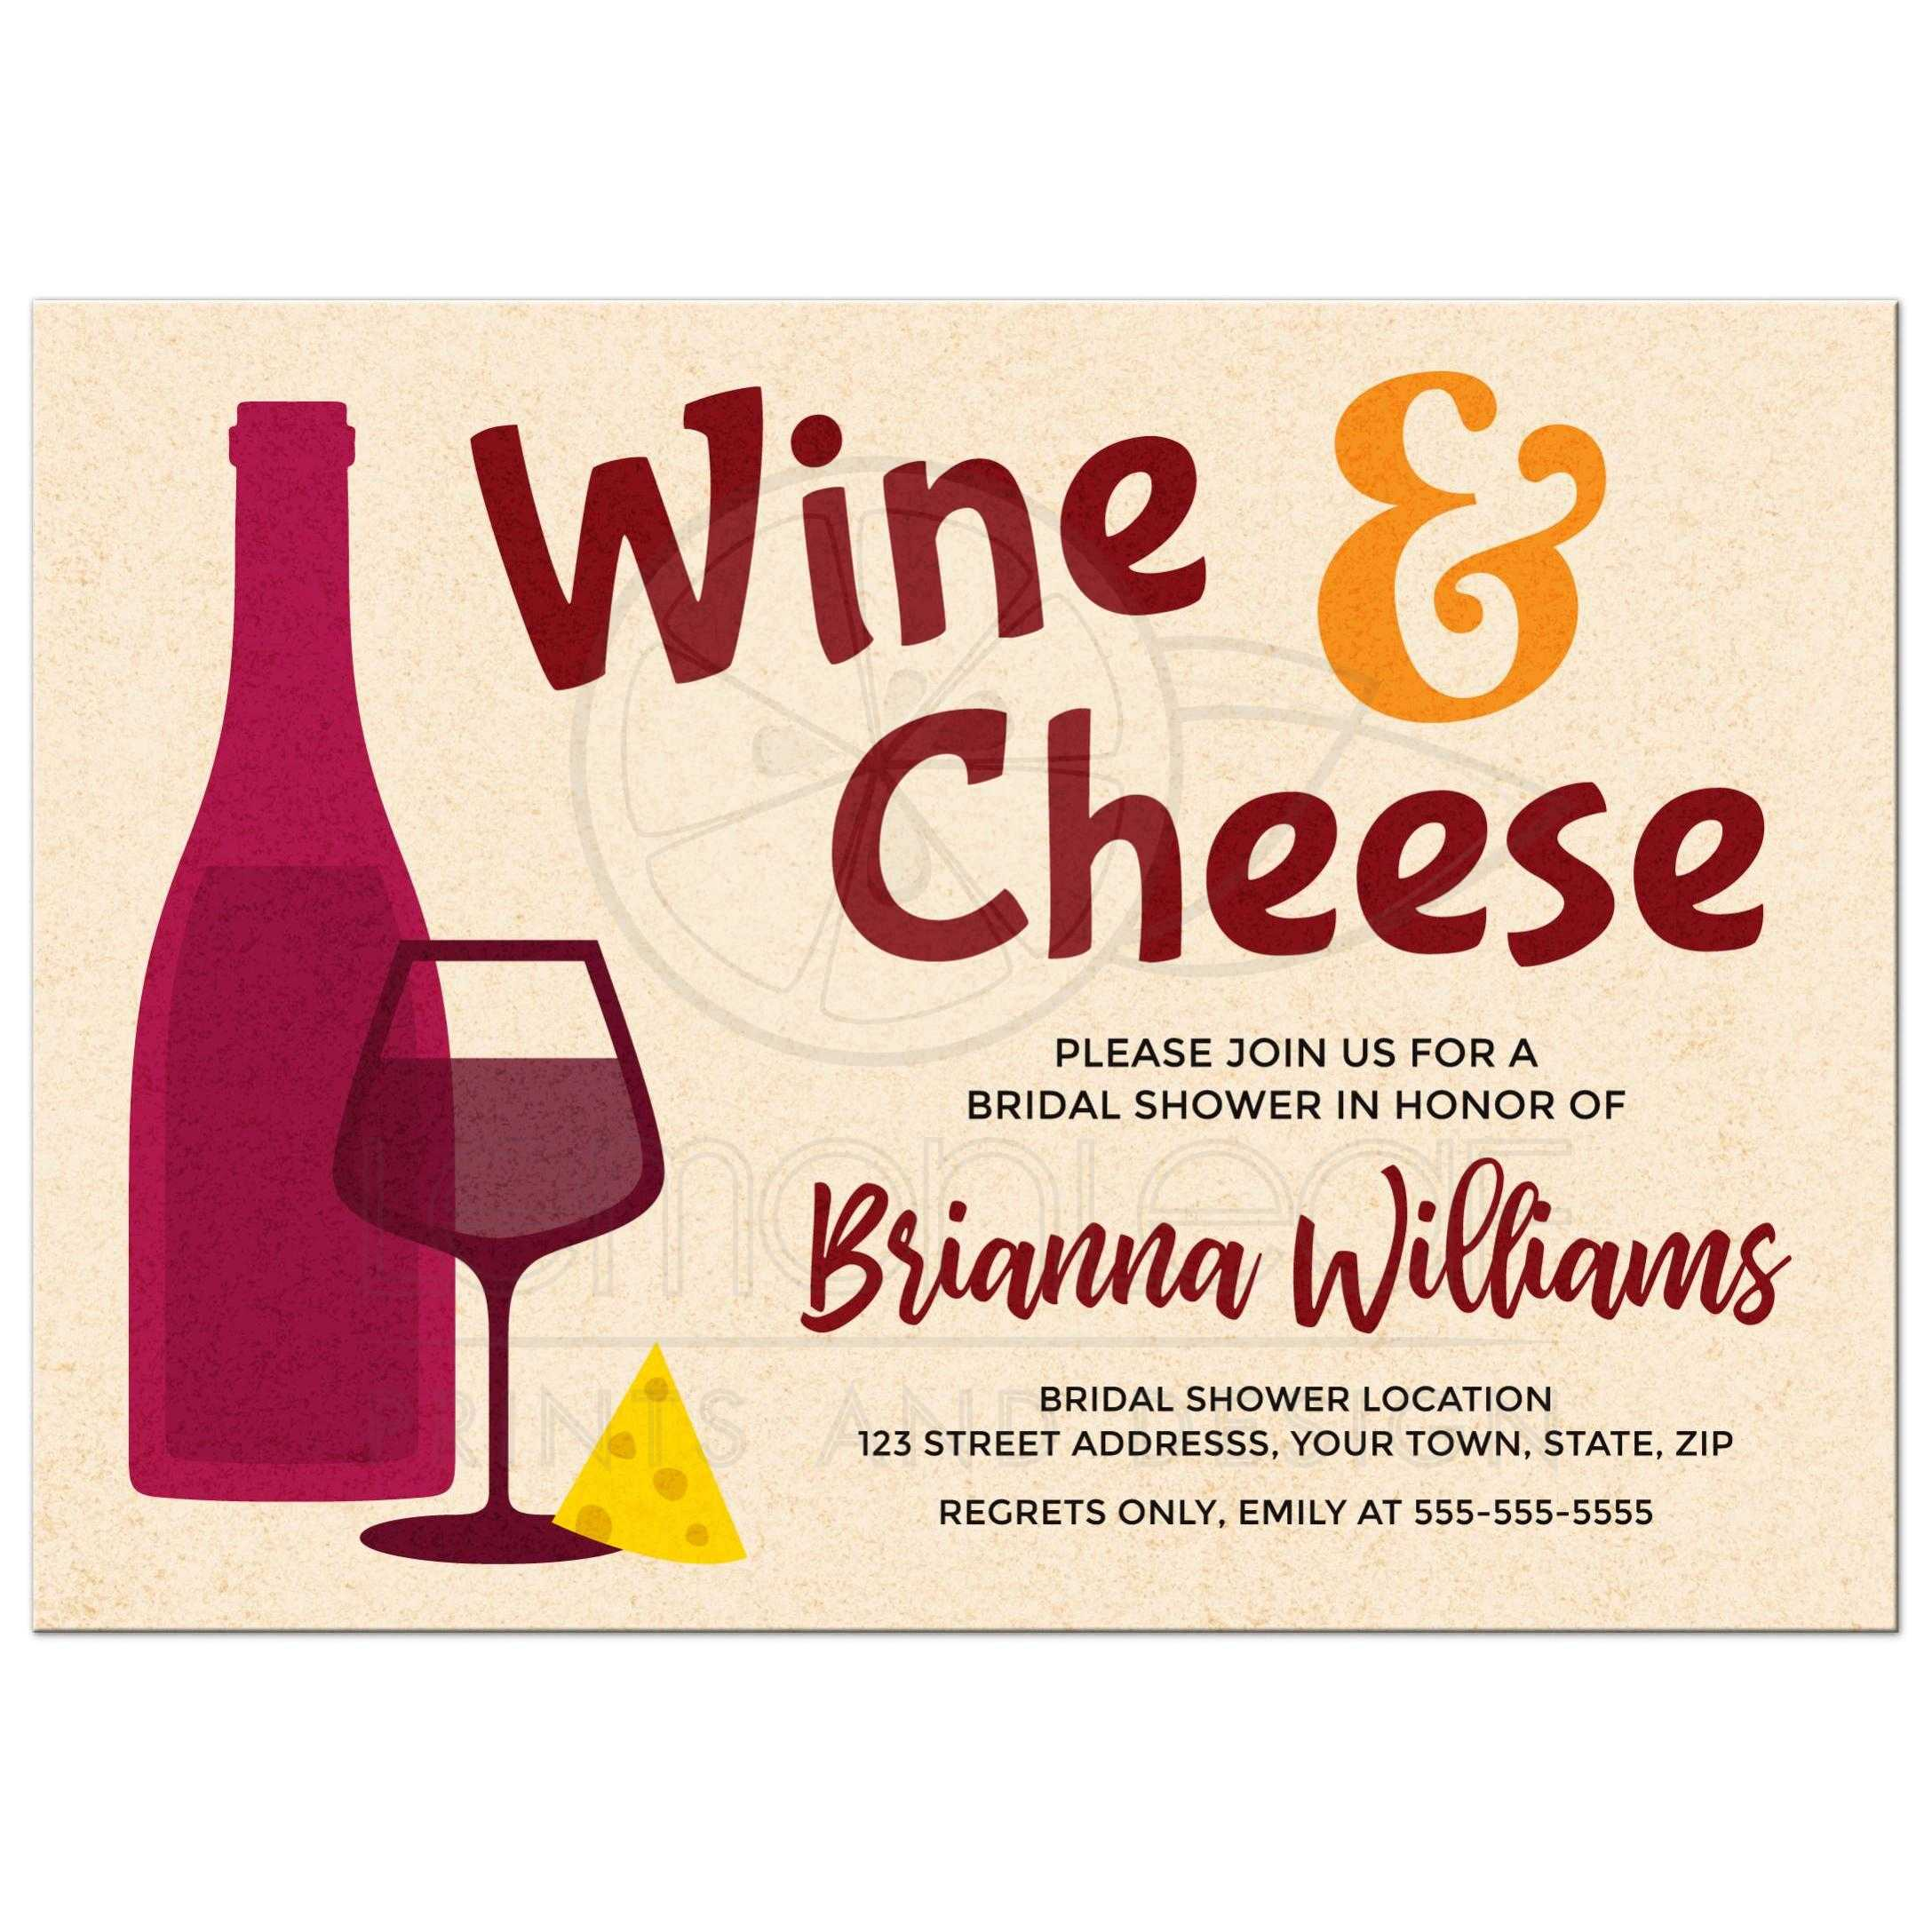 Wine and cheese bridal shower invitations with bottle and glass